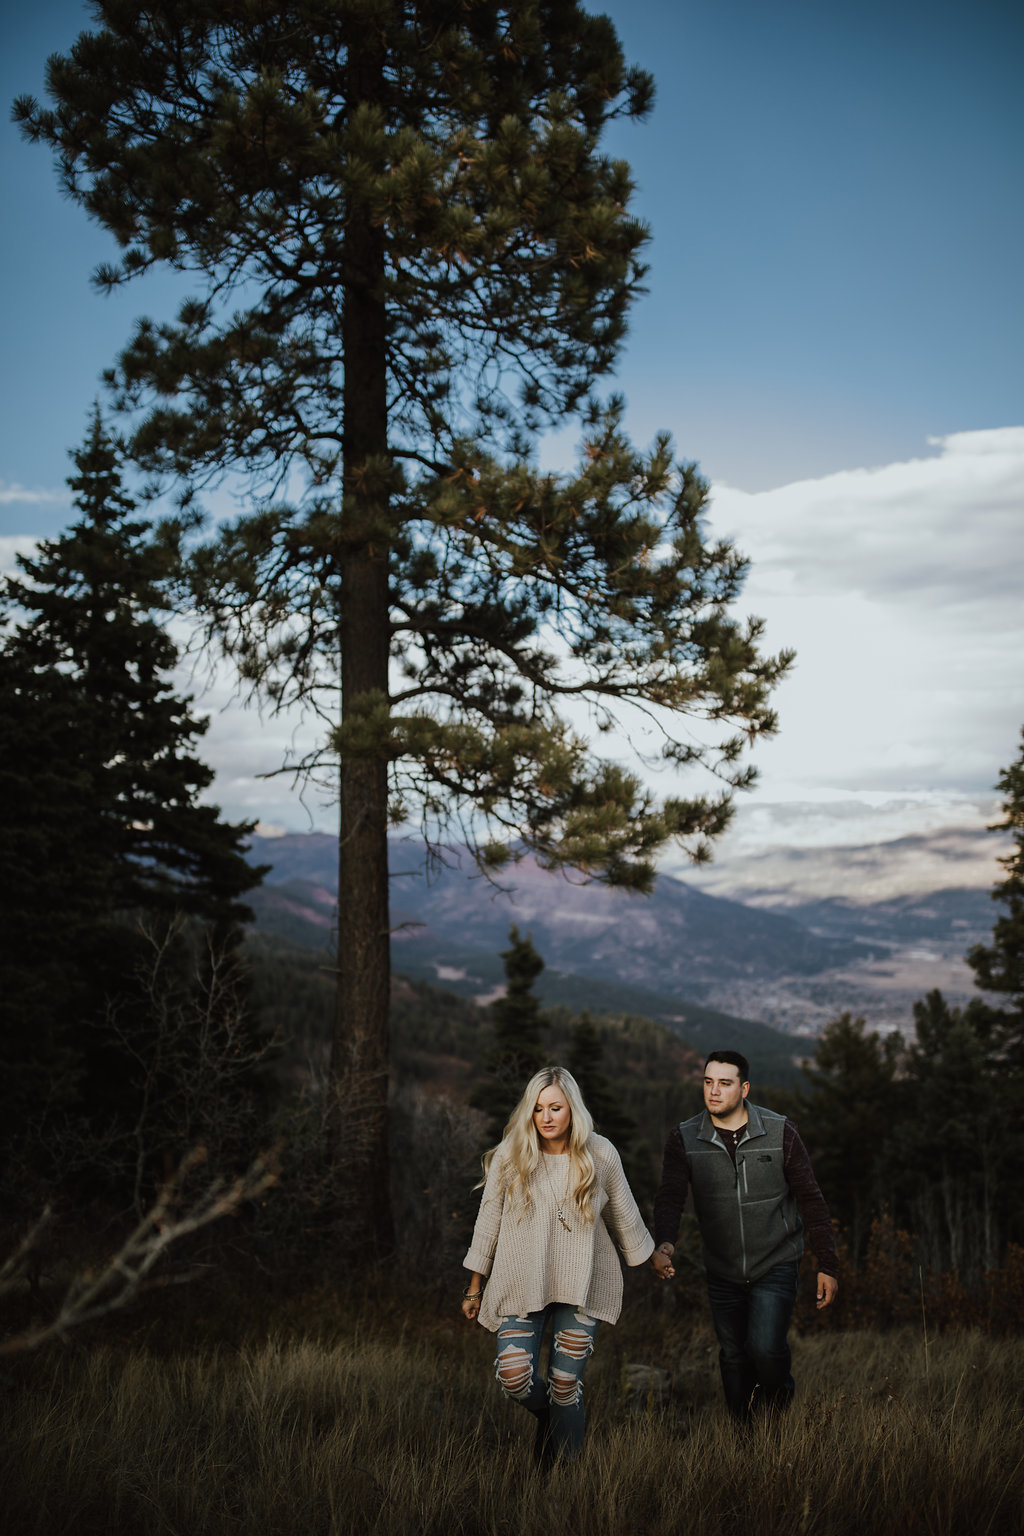 new-mexico-destination-engagement-wedding-photography-videography-adventure-034